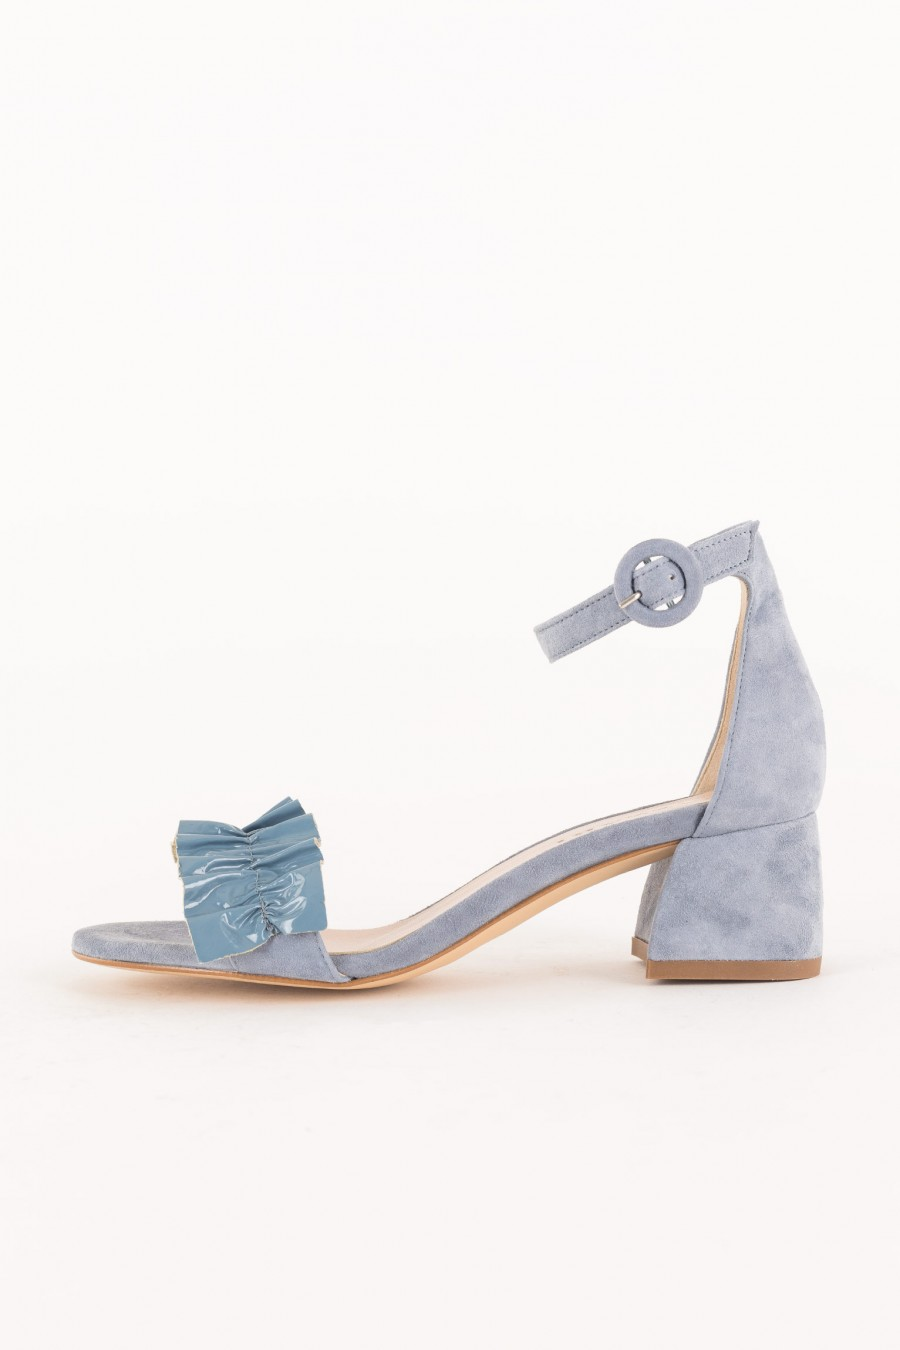 light blue sandal with ankle strap